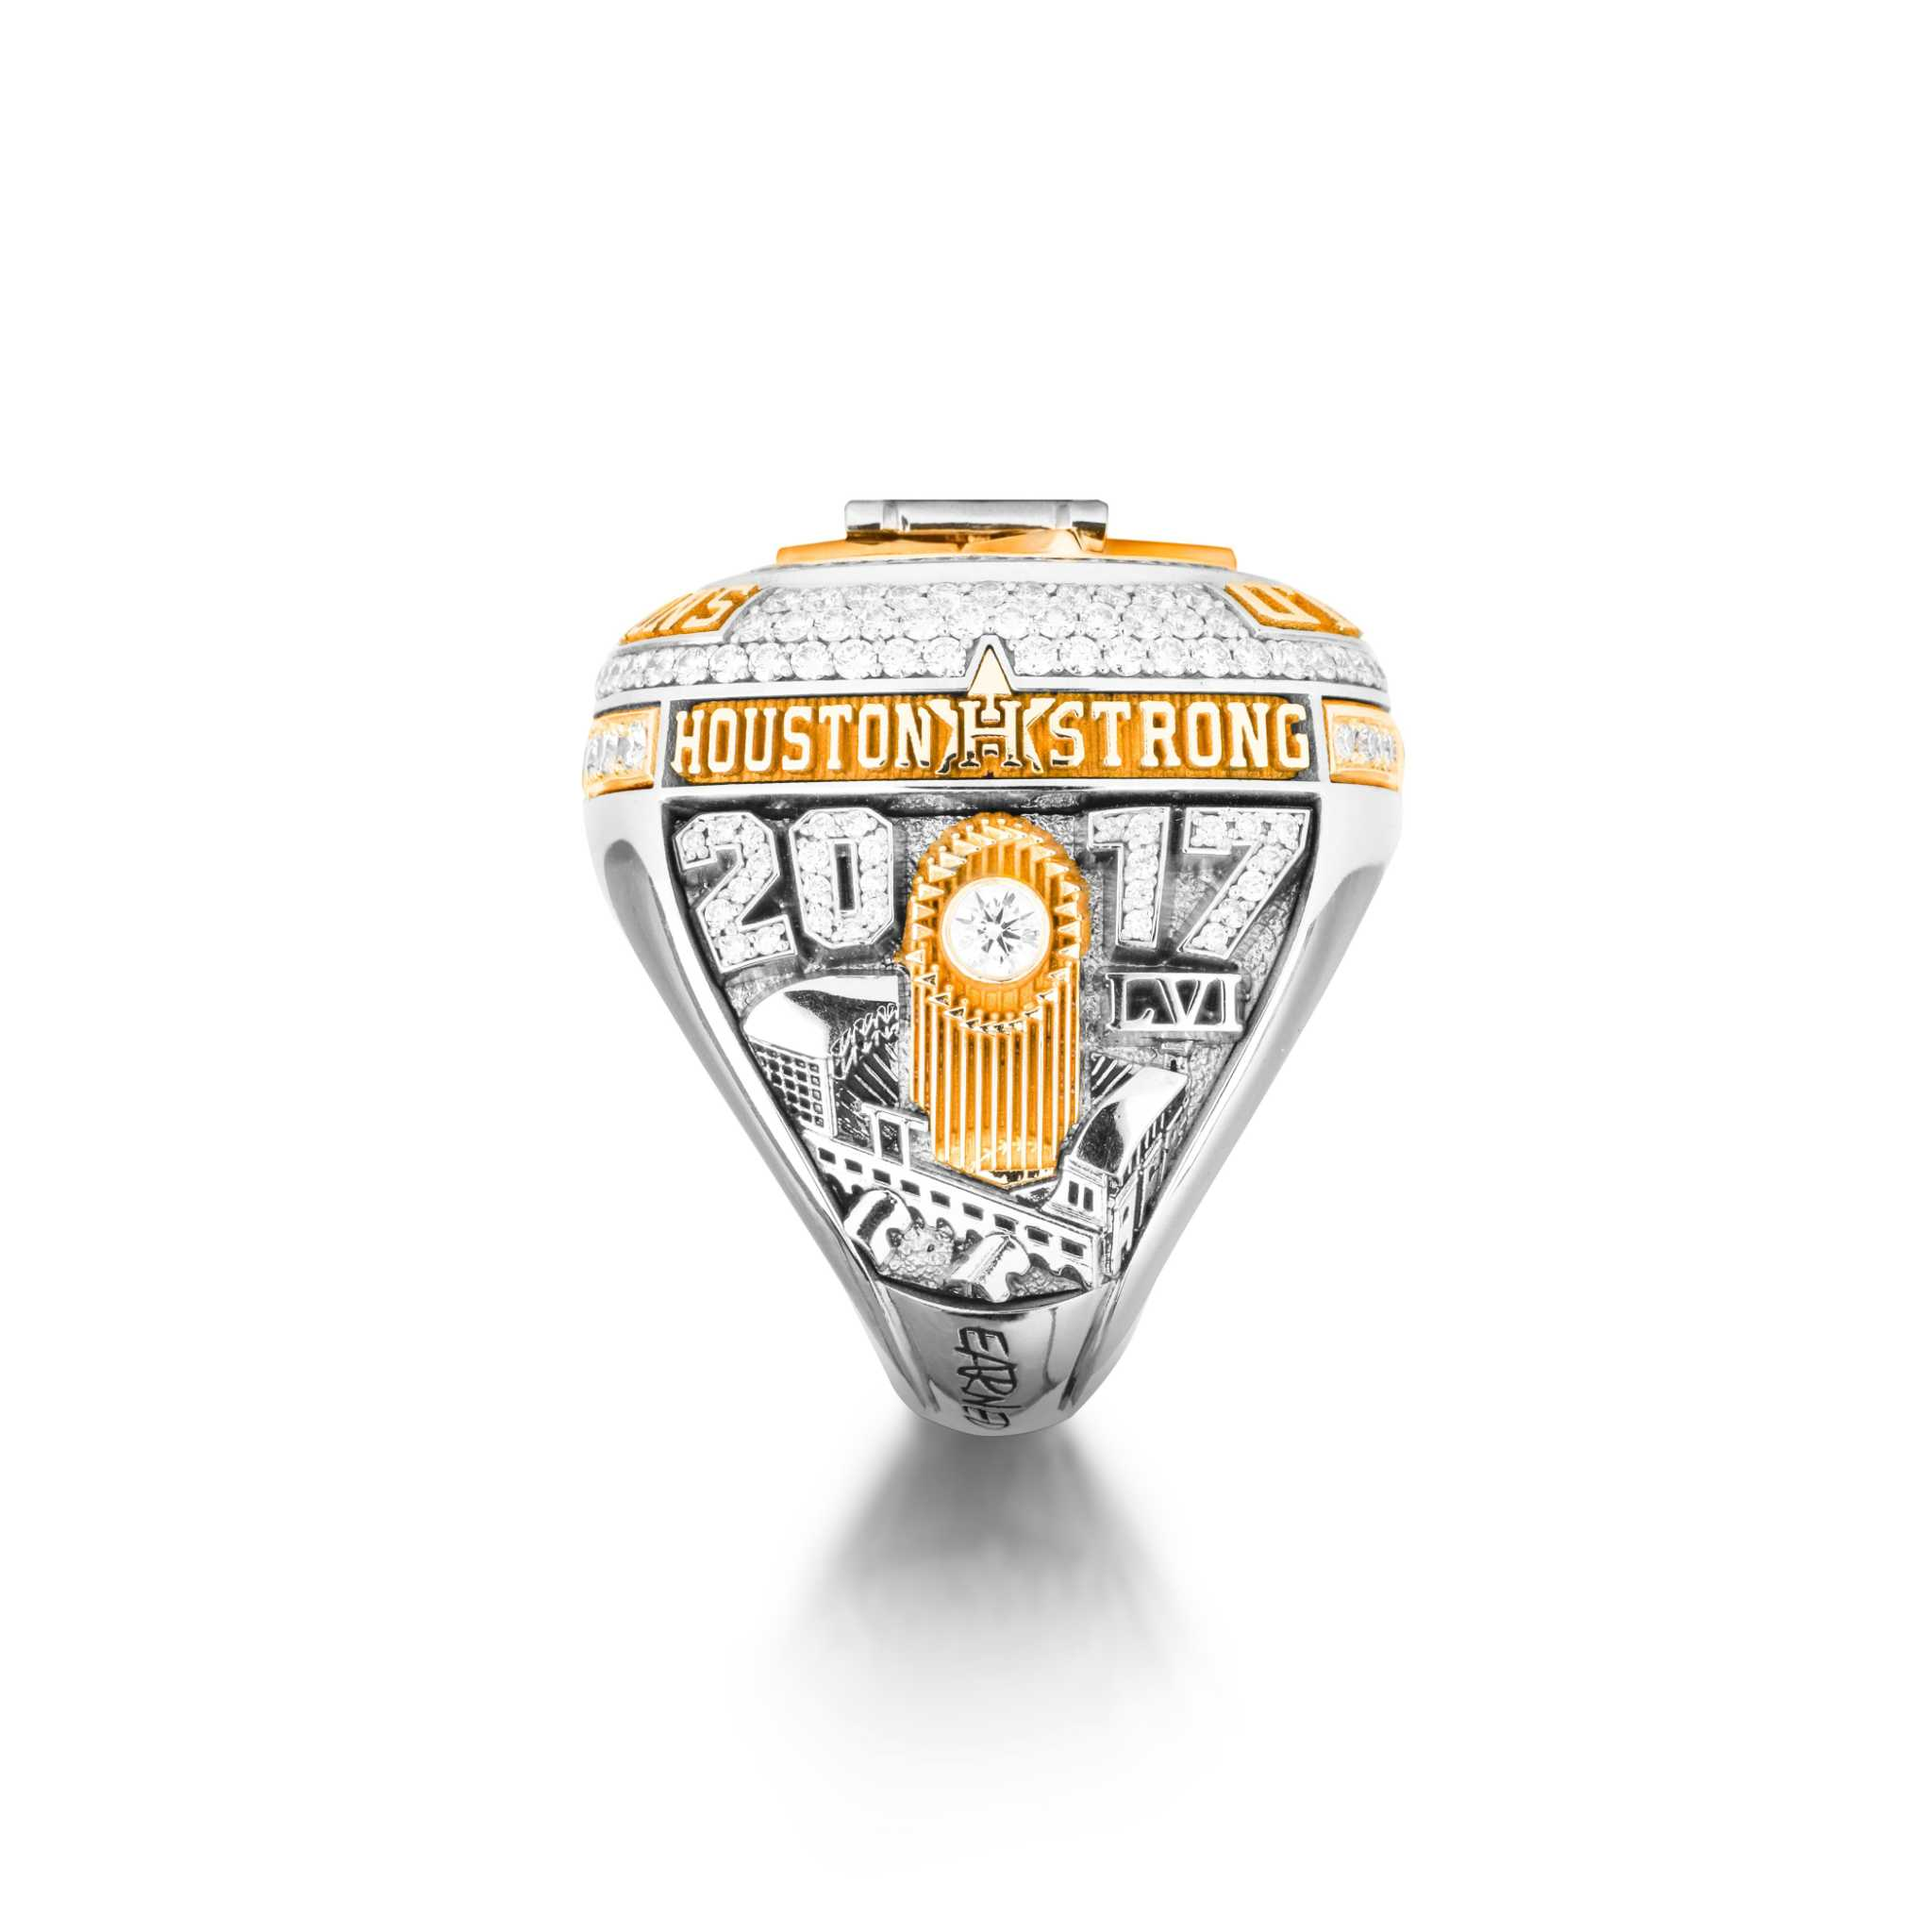 collaborates state inaugural texas national to football ring championship college releases present with playoff rings jostens news